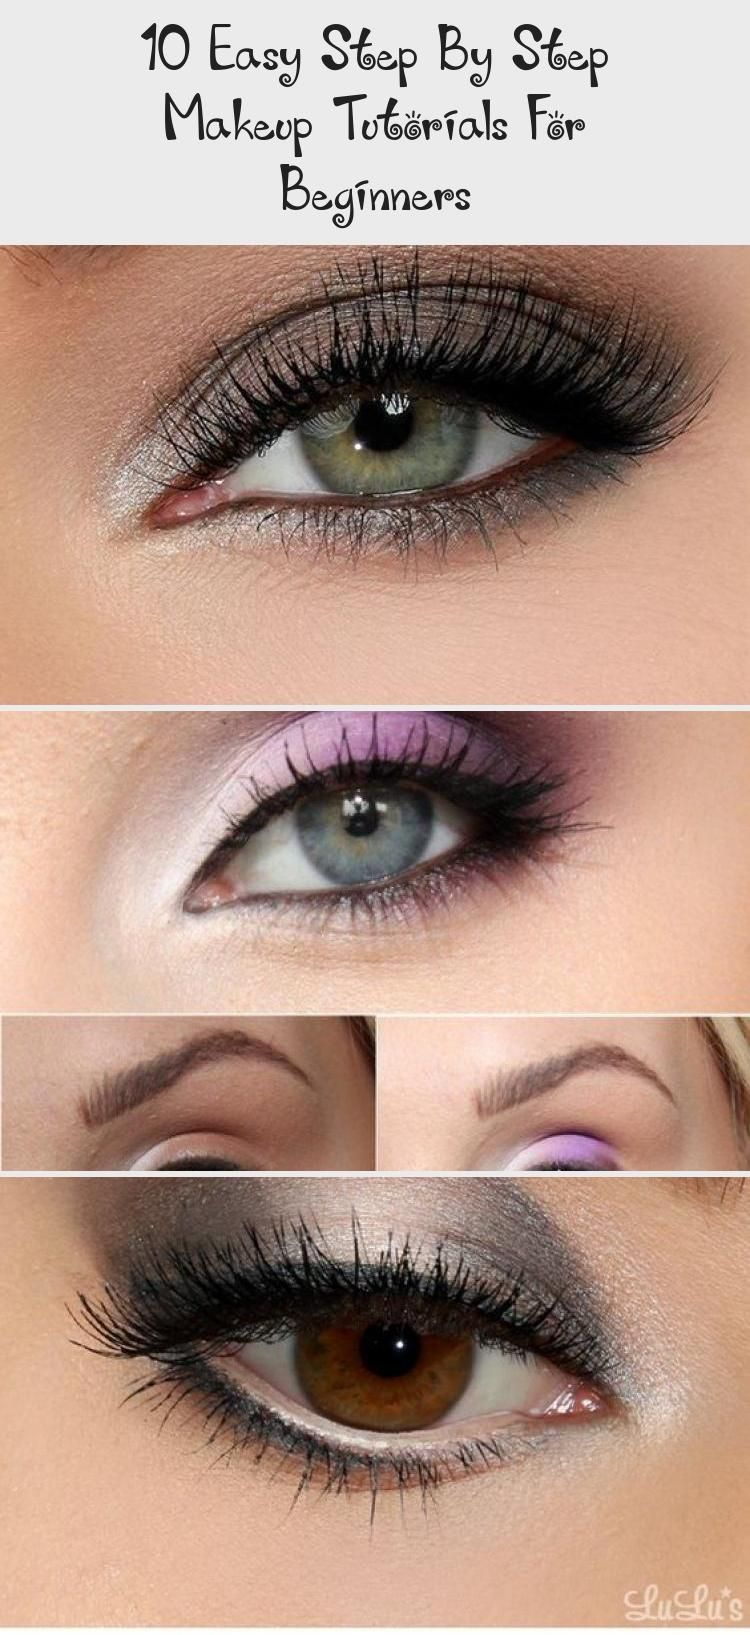 10 Easy Step By Step Makeup Tutorials For Beginners